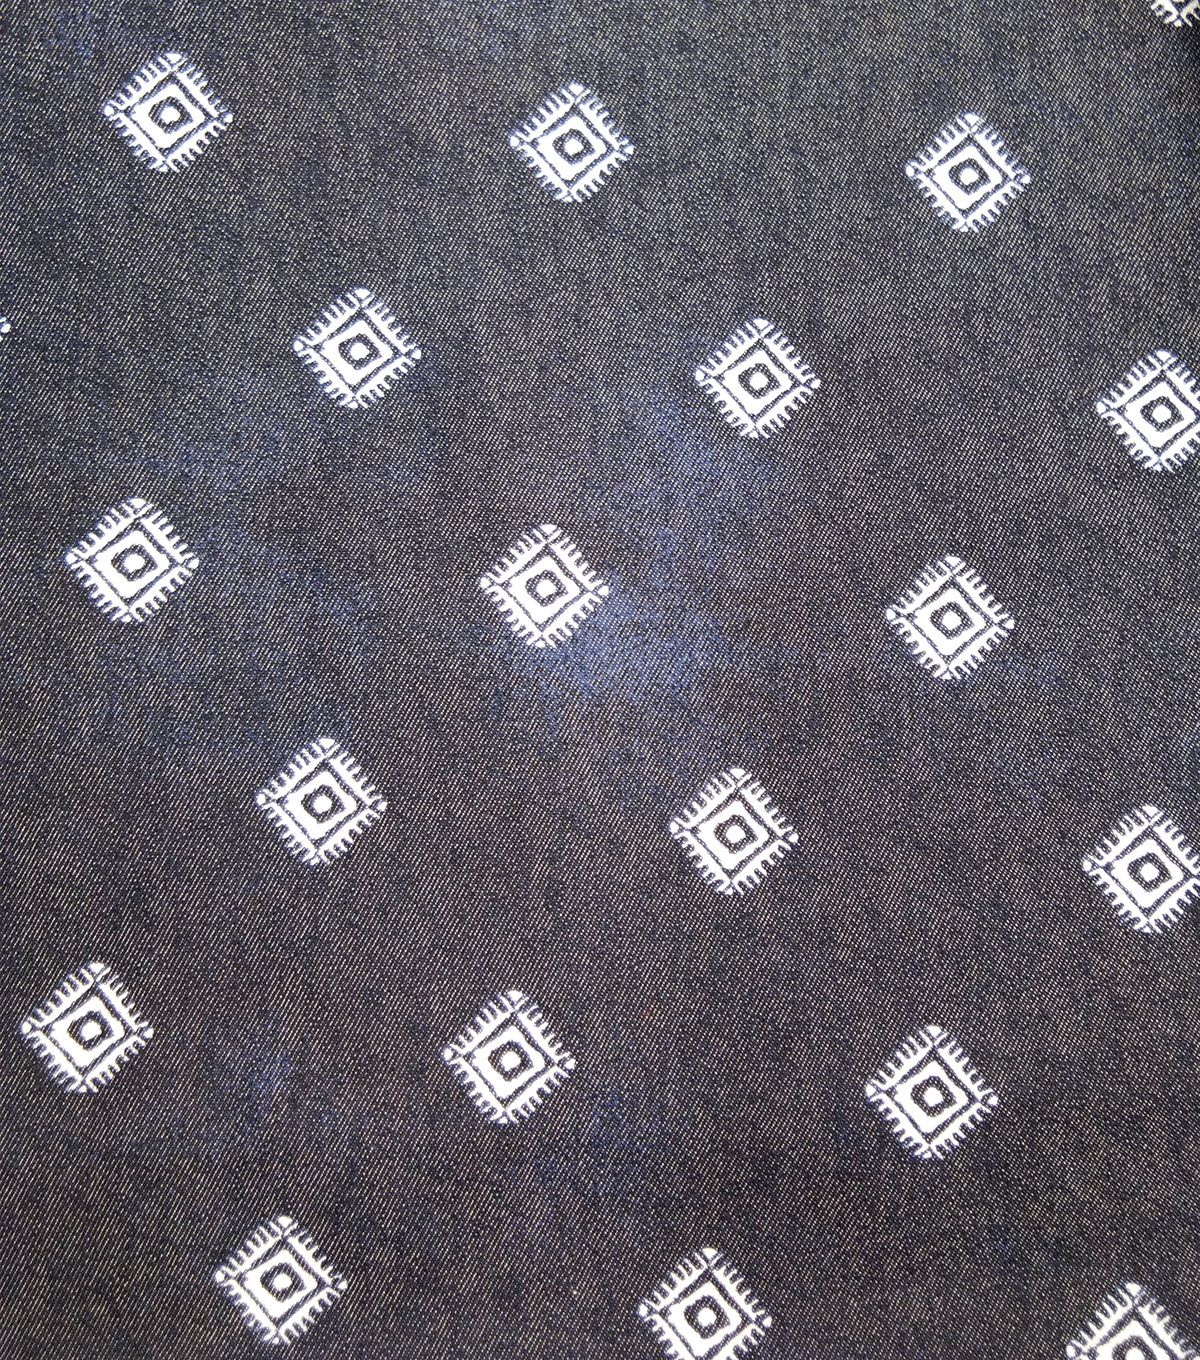 Sportswear Denim Stretch Fabric-Boho Diamonds